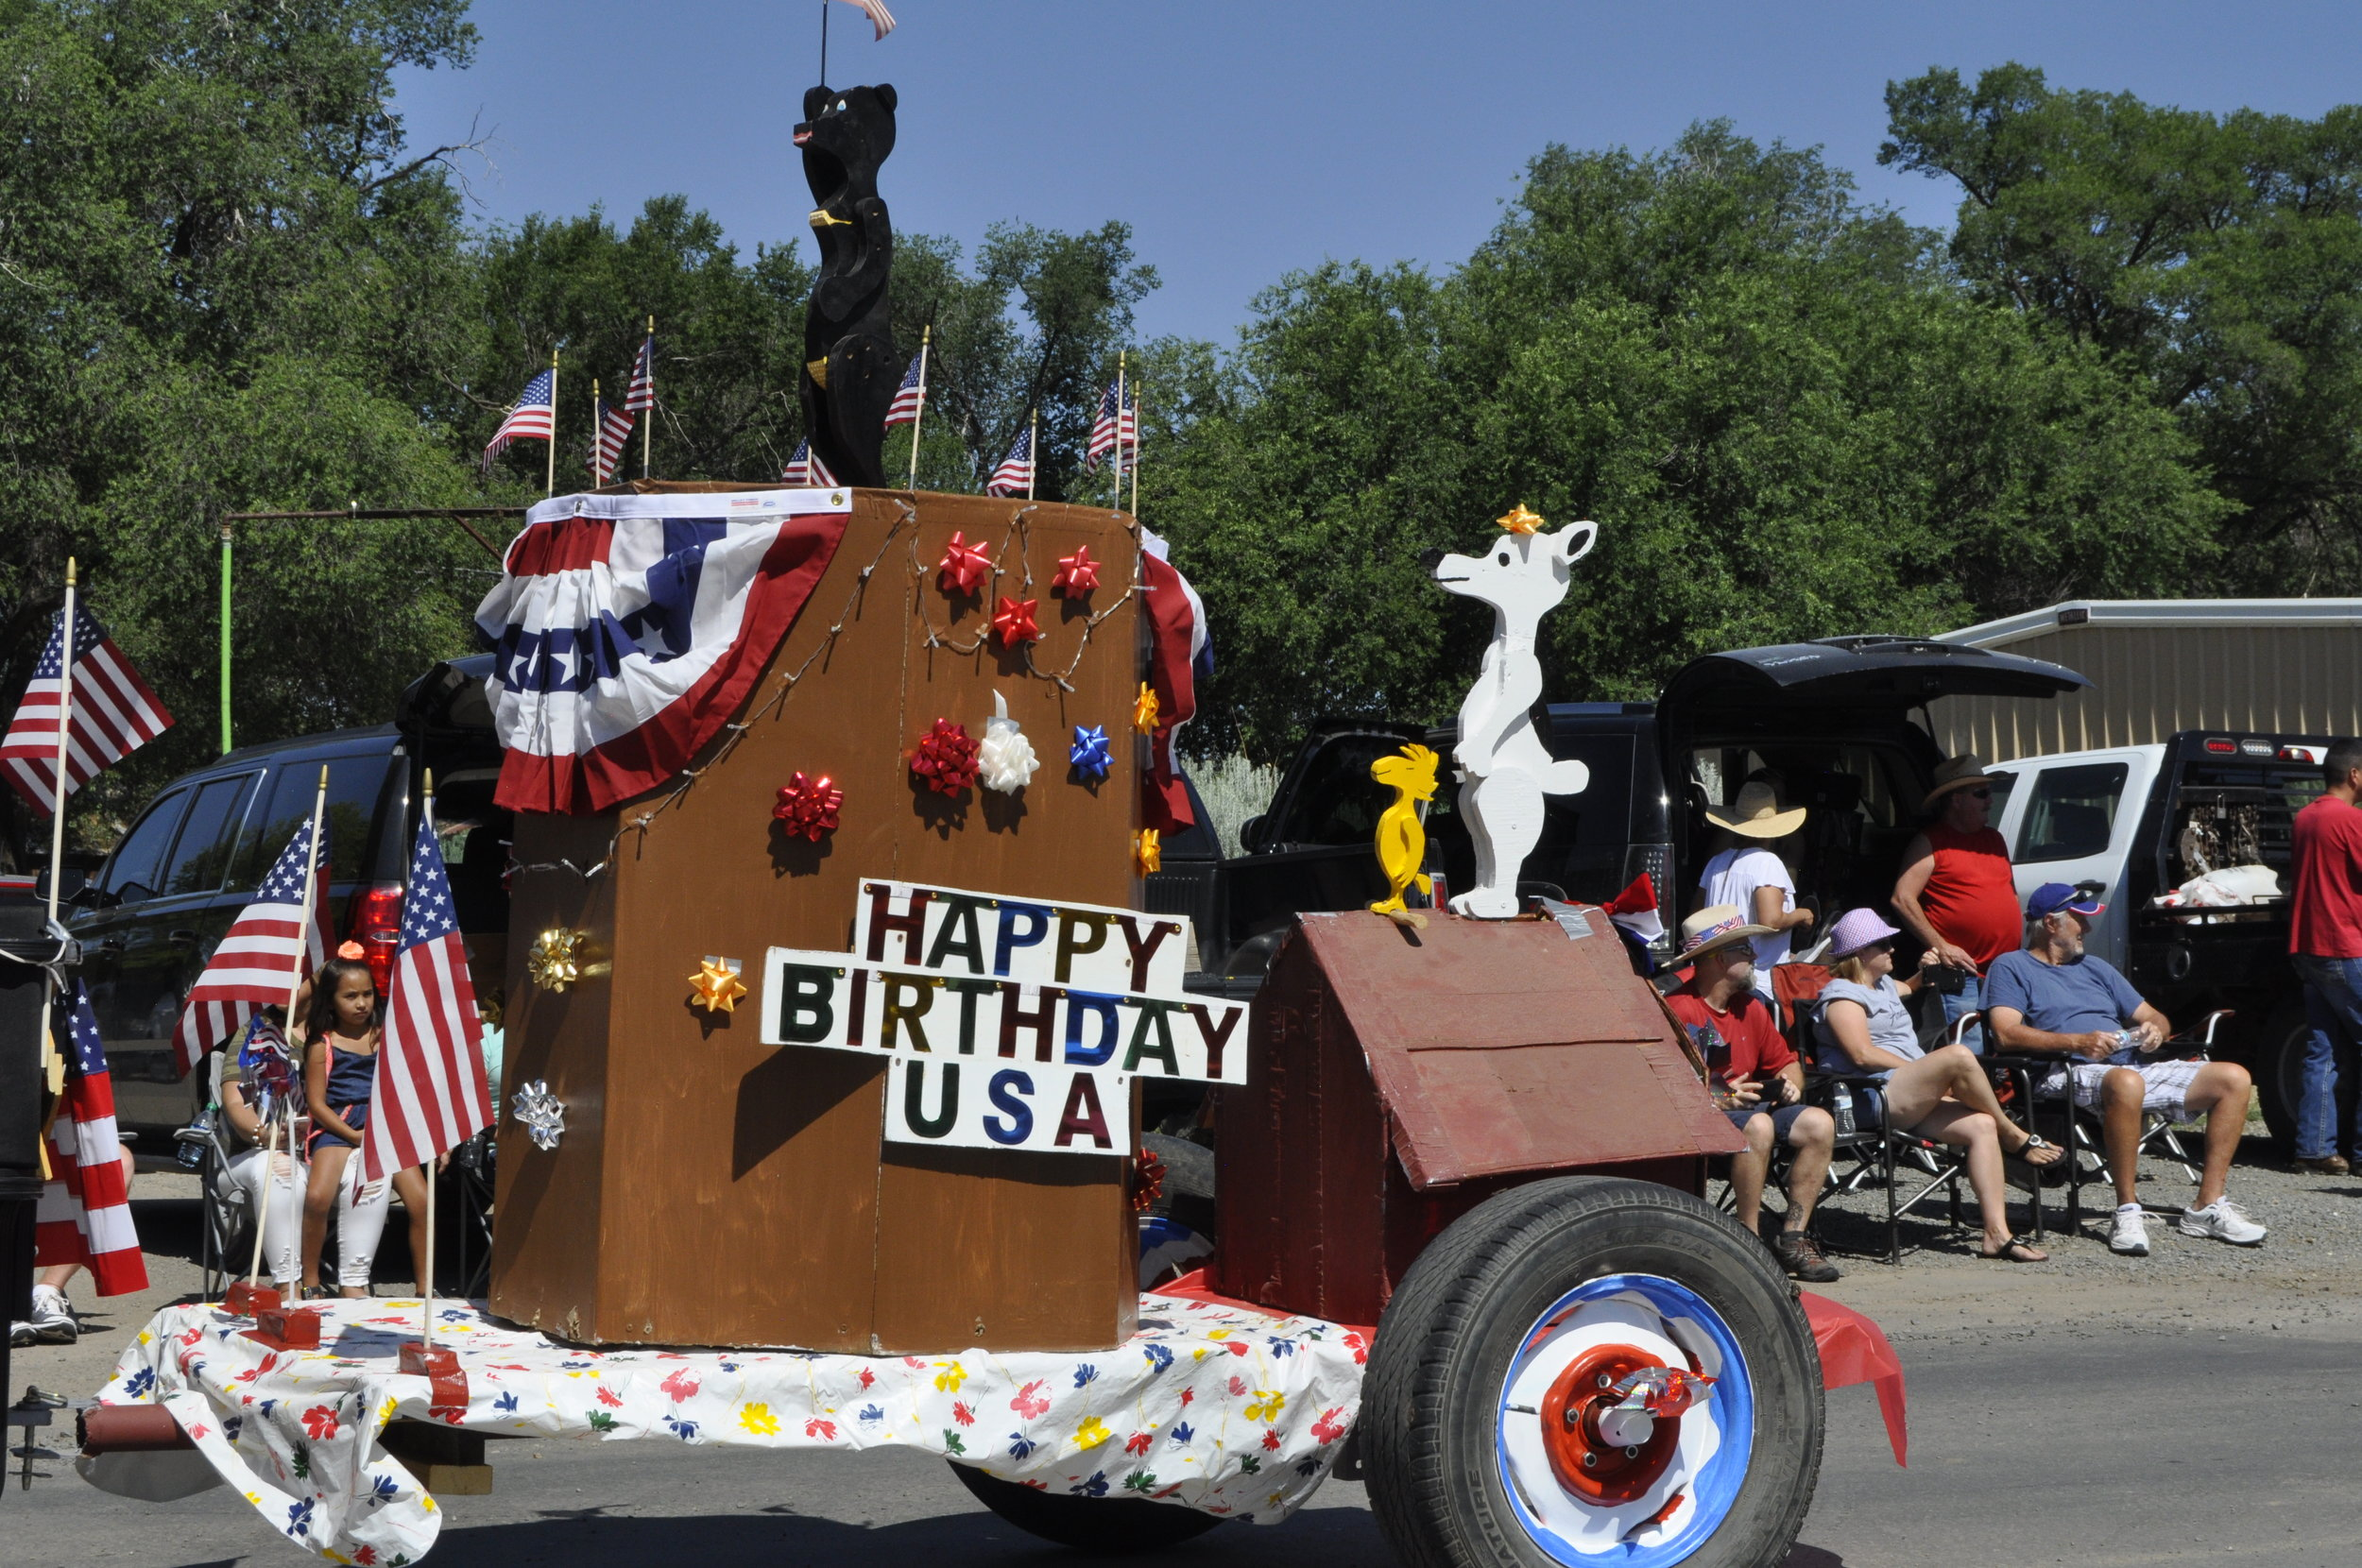 Happy Birthday USA float